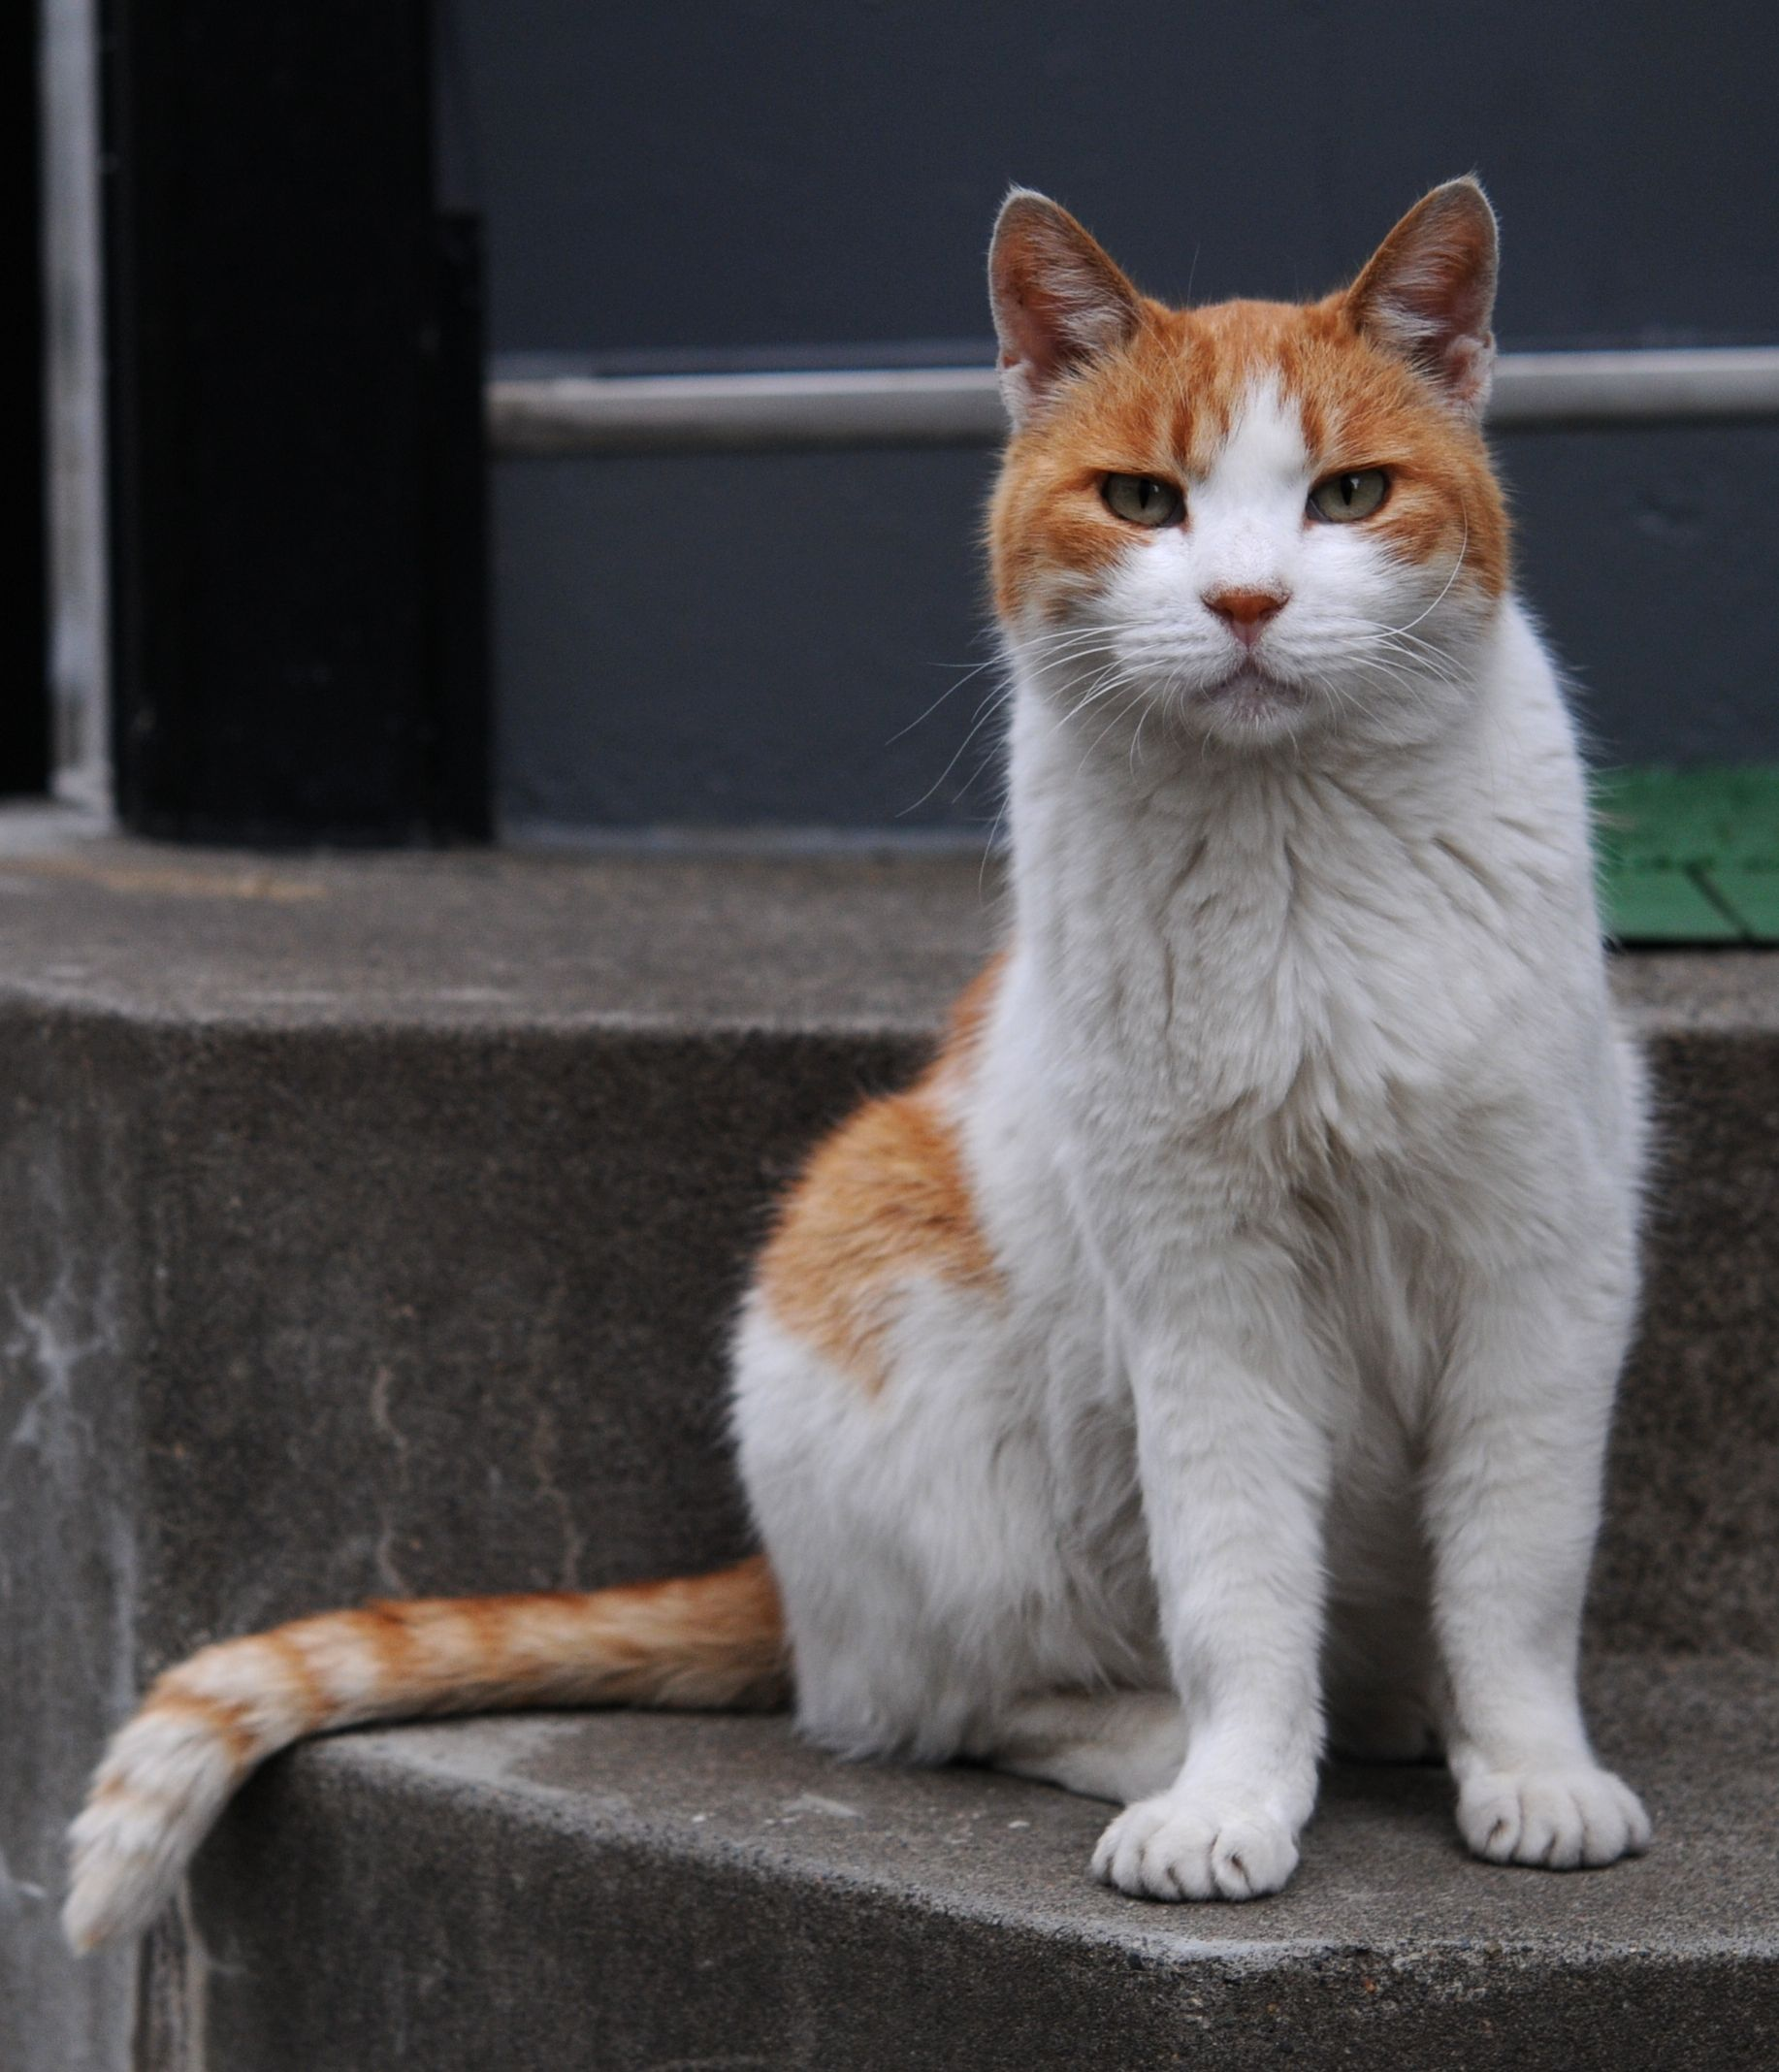 Orange And White Tabby Cat With The Impressive Tail Hisashi 01a Jpg 1834 2136 White Tabby Cat Cat Personalities Cute Cat Breeds